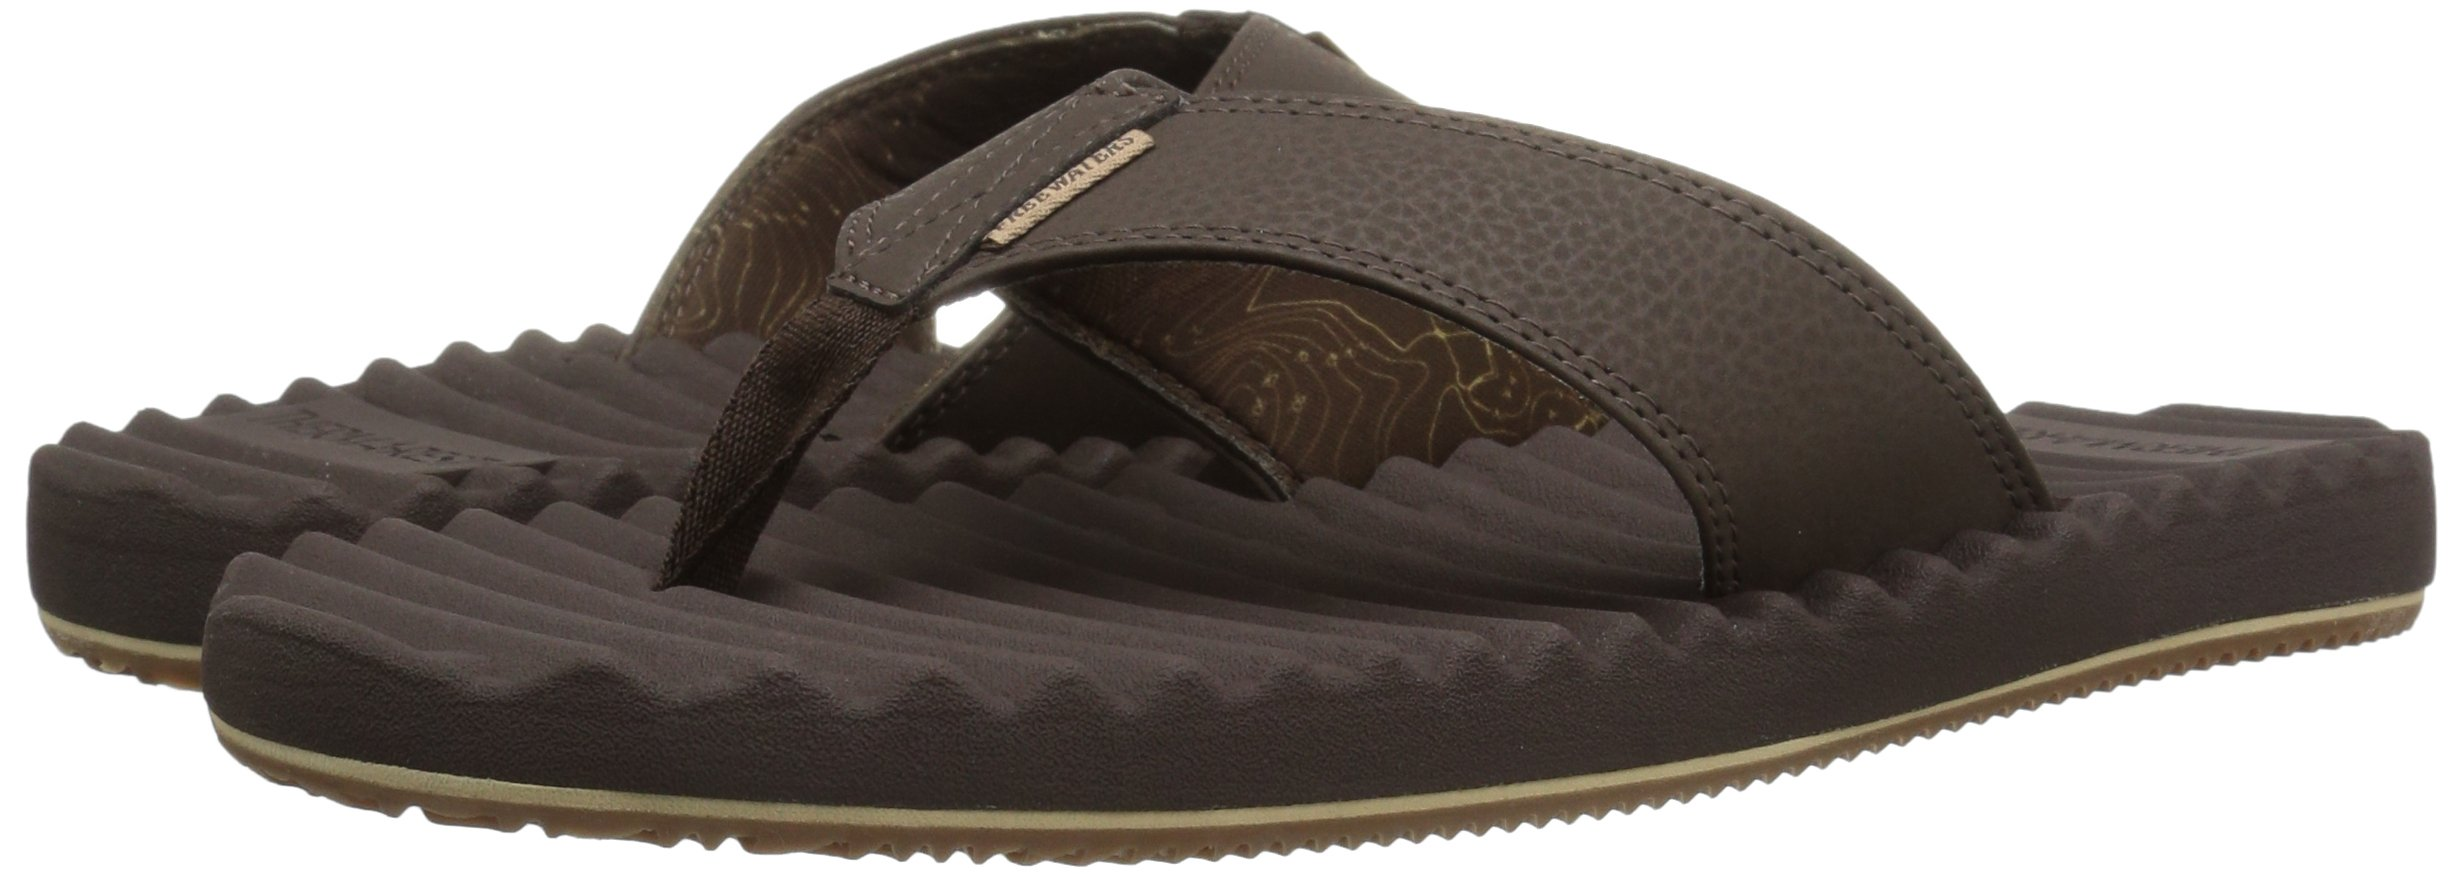 Freewaters Men's Basecamp Therm-a-Rest Flip Flop Sandal, Brown, 10 M US by Freewaters (Image #6)